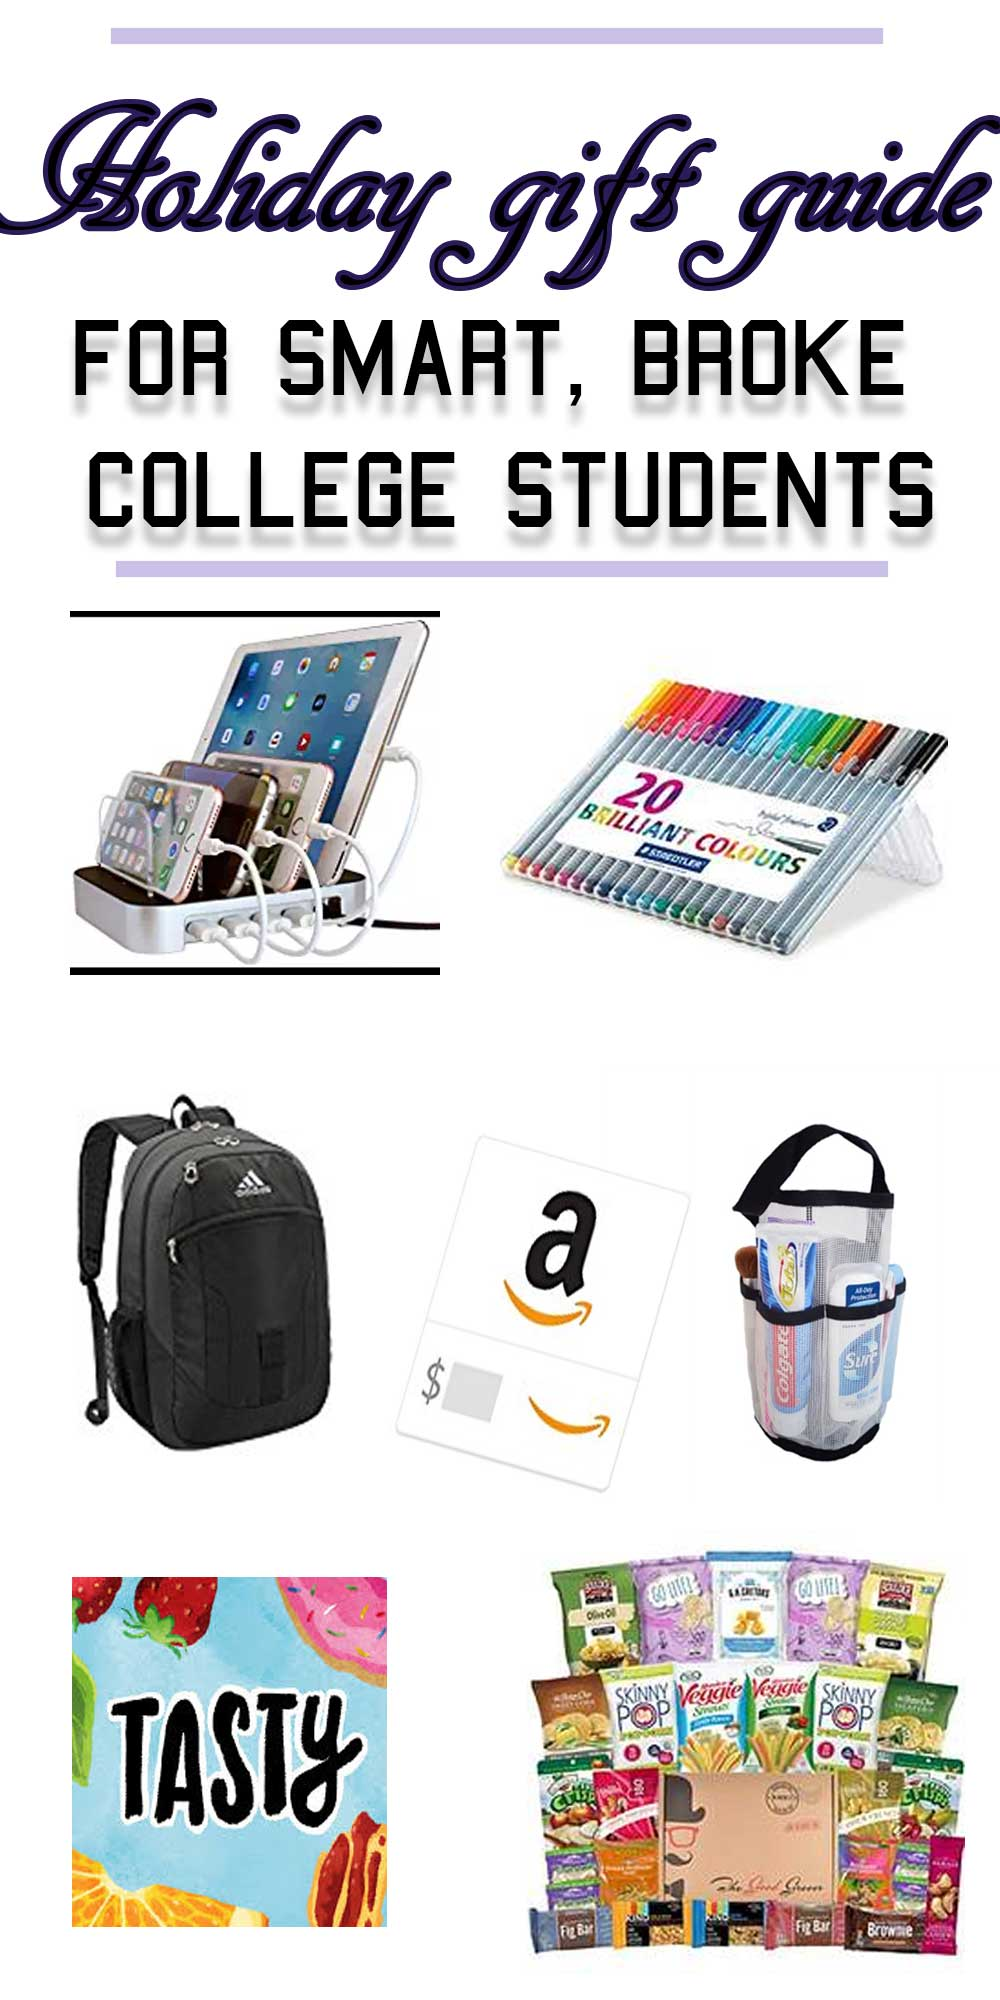 Not sure what to get your favorite college student? OR want to tell people what you actually want and NEED? Here's what broke college students want for the holidays--Christmas, New Years, or just for their birthdays. These are holiday gifts for him and holiday gifts for her--totally unisex. Click here to view the full holiday guift guide for smart and broke college students!